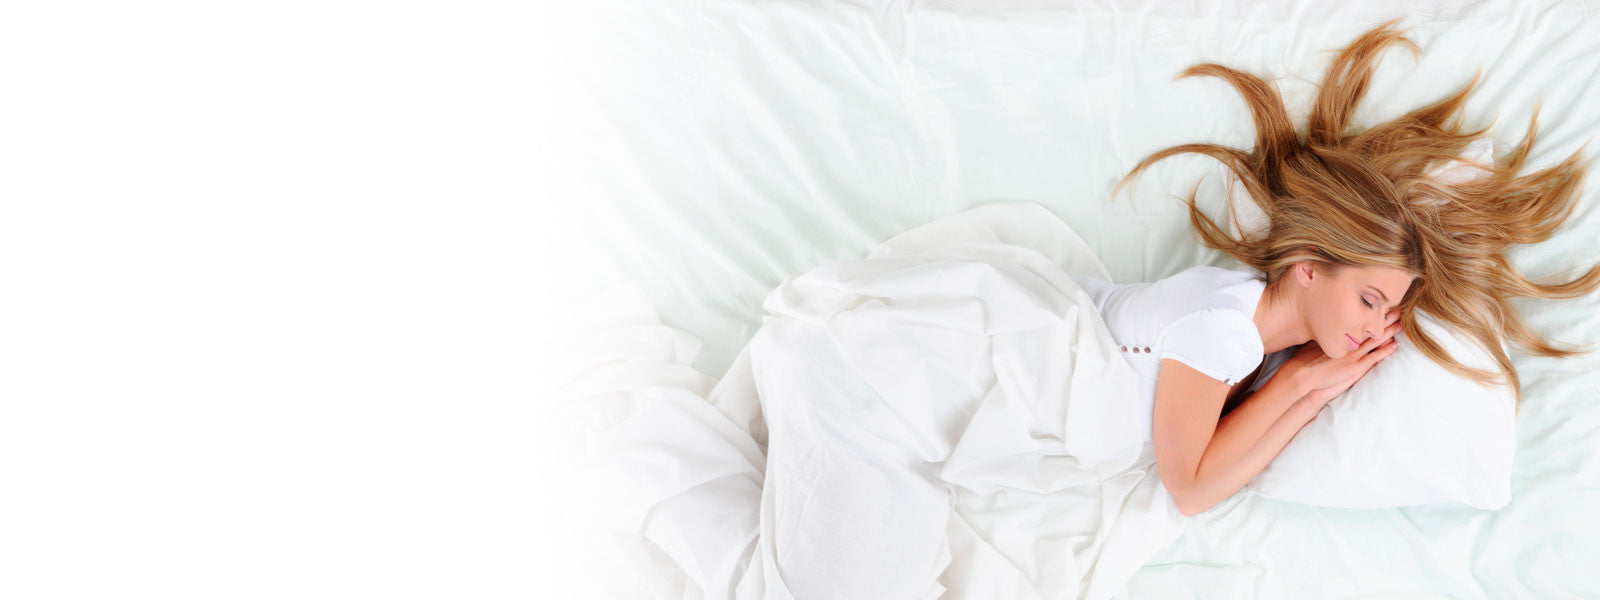 Puffy Perfect Sleep | How Your Mattress Matters